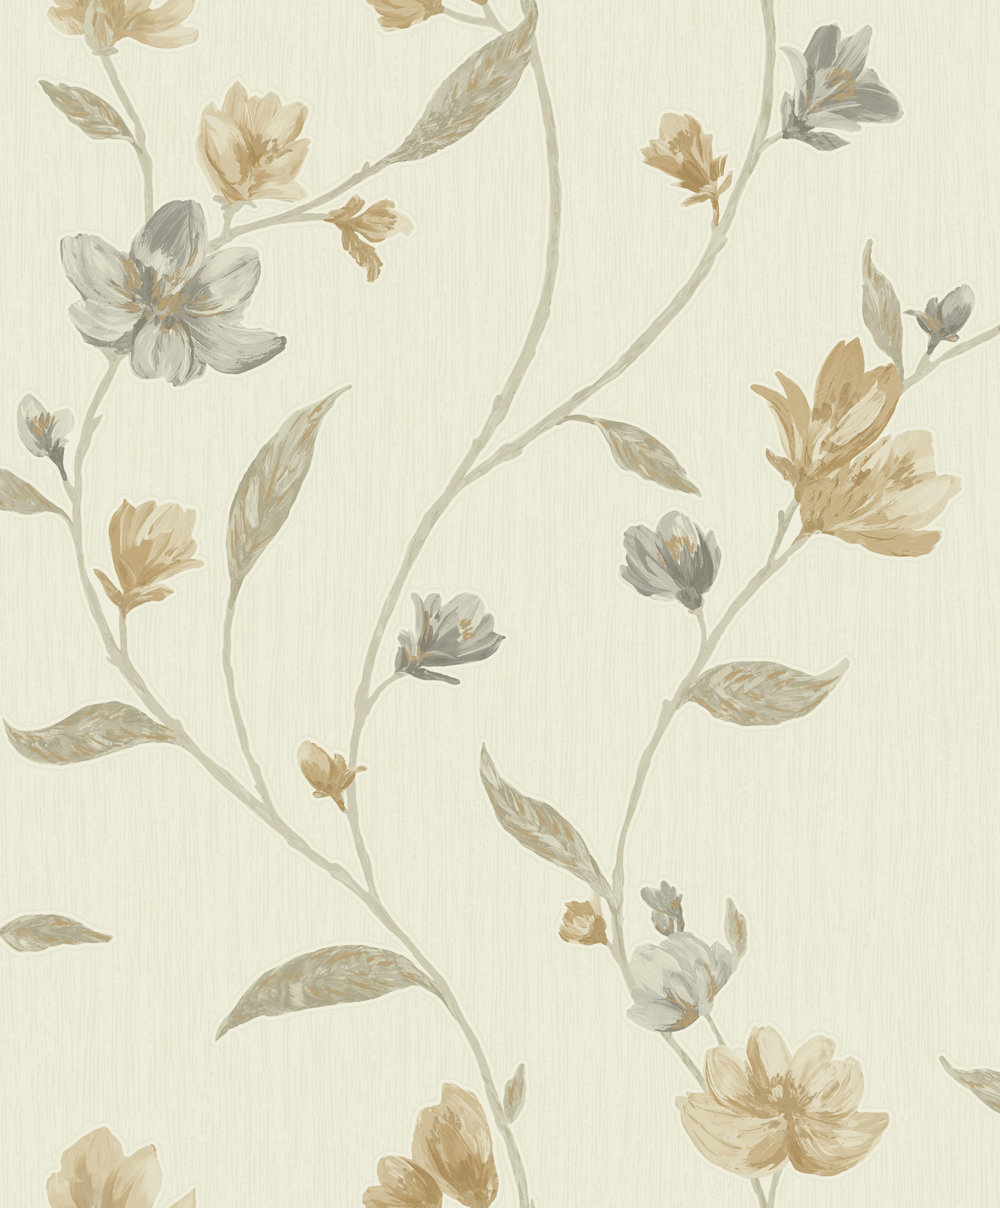 Albany Avonlea Neutral Wallpaper - Product code: 75753